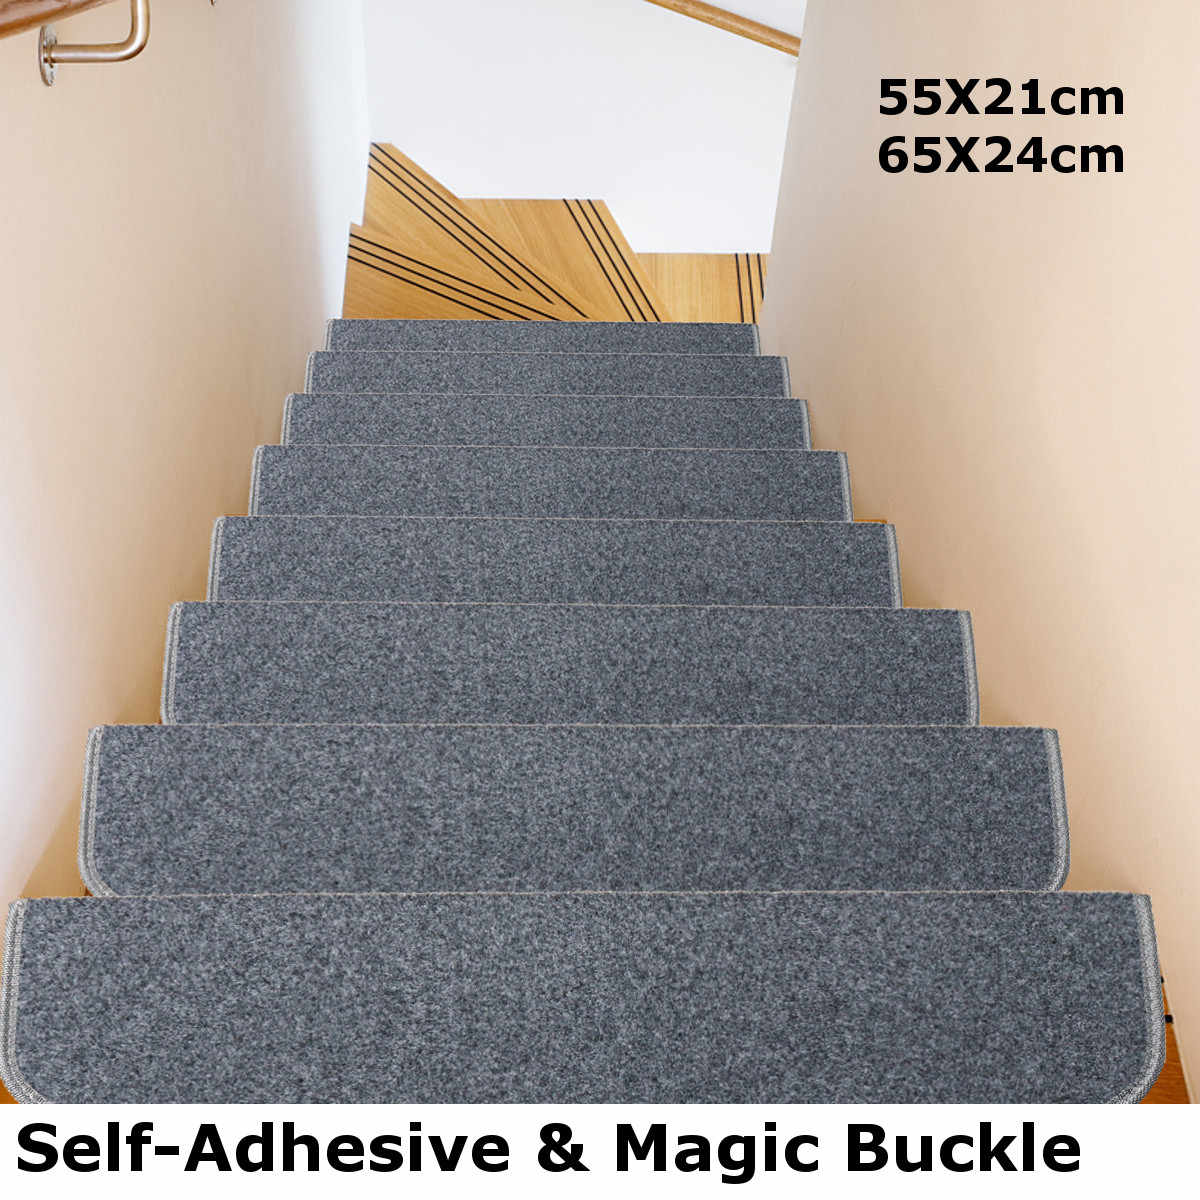 15 Pcs Carpet Self-adhesive Stair Mats Protection Step Staircase Floor Tread Mat